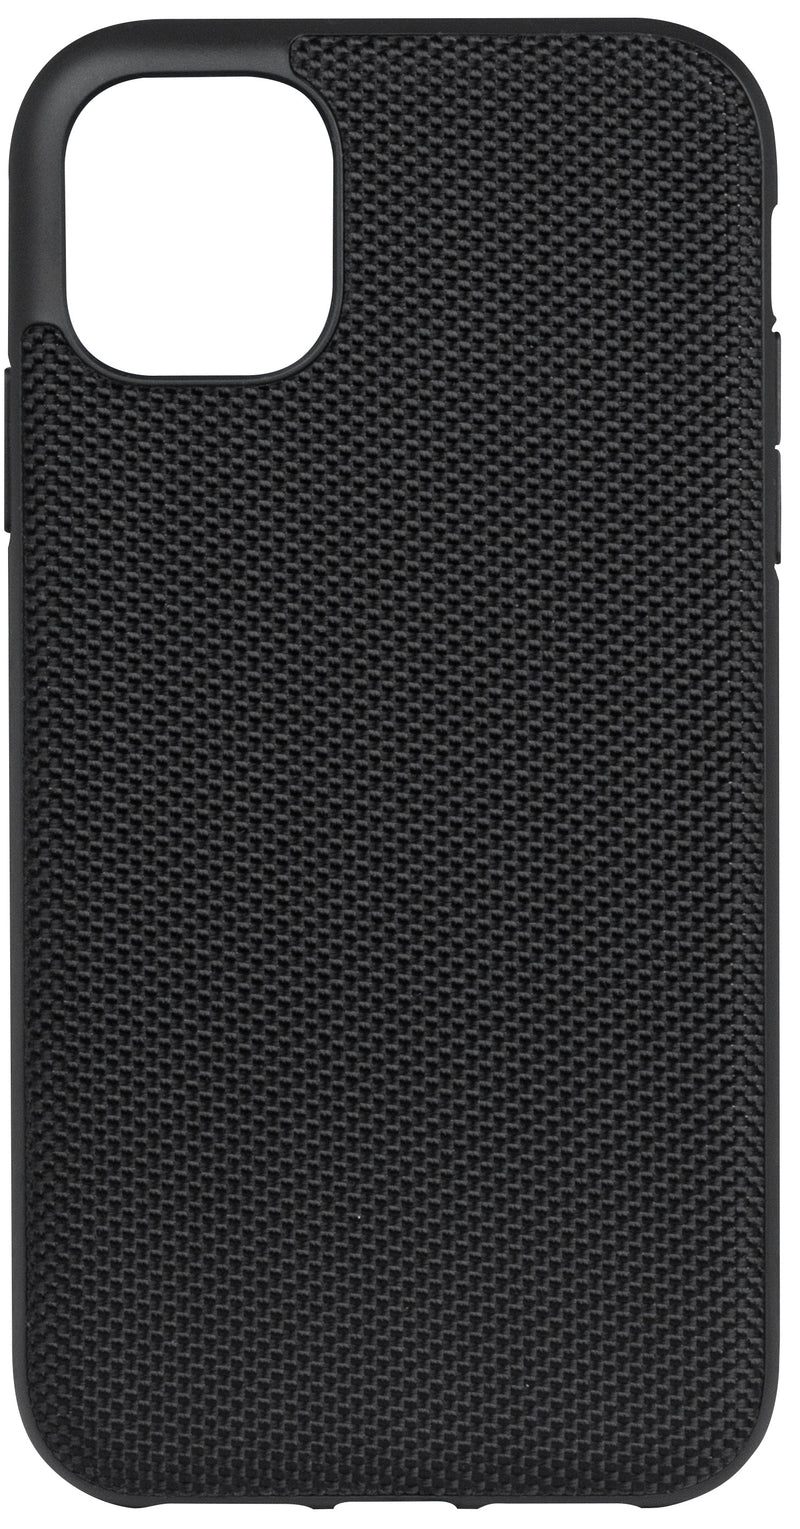 Evutec Ballistic Nylon Phone Case with Vent Mount for iPhone 11 Pro Max